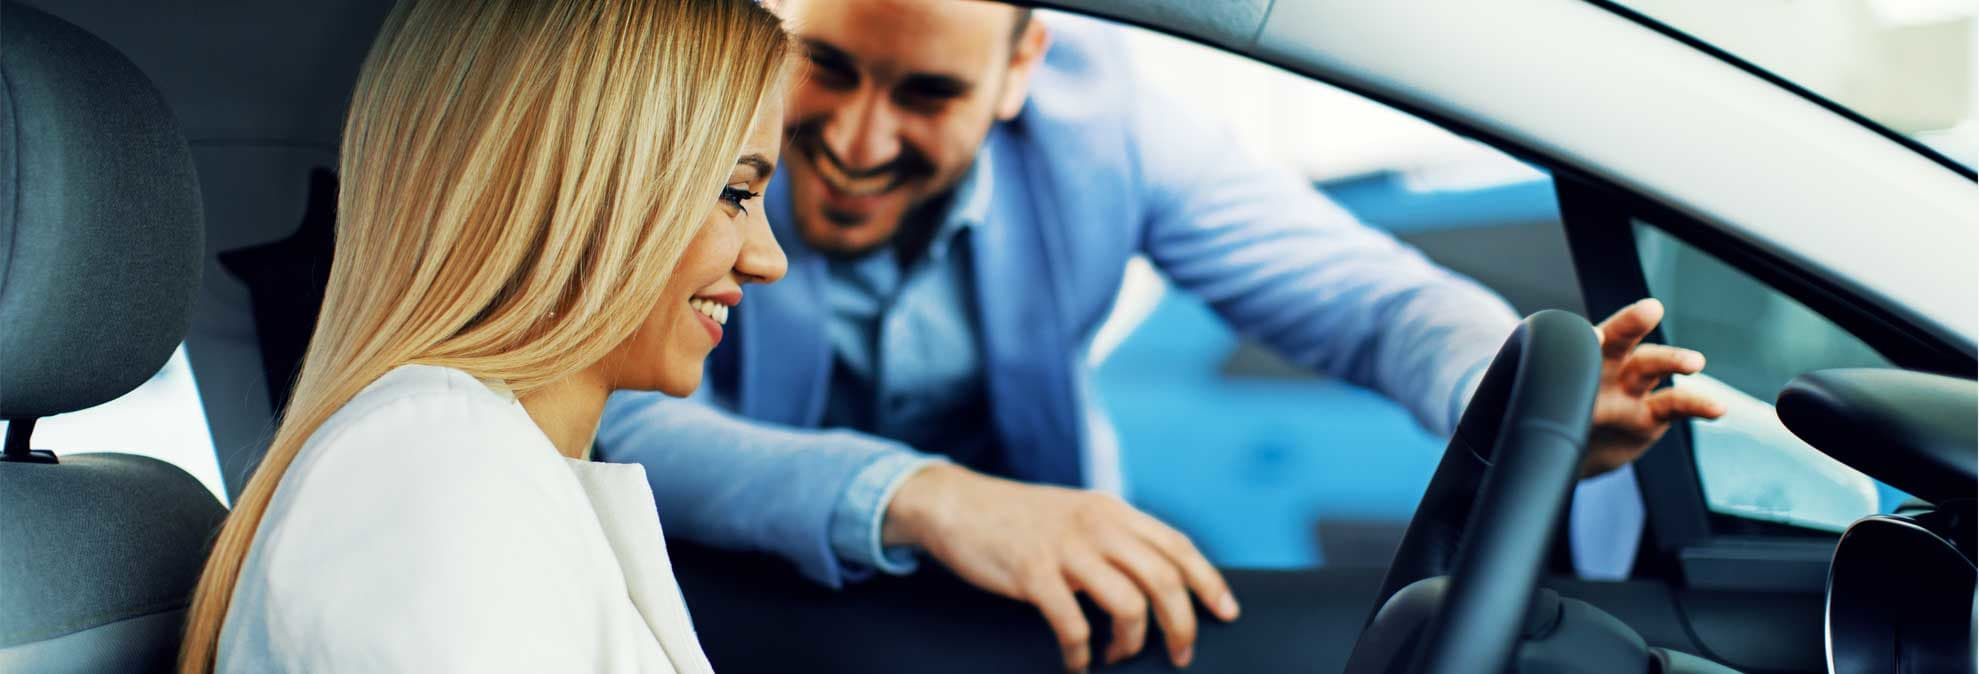 Best Used Cars by Price - Consumer Reports